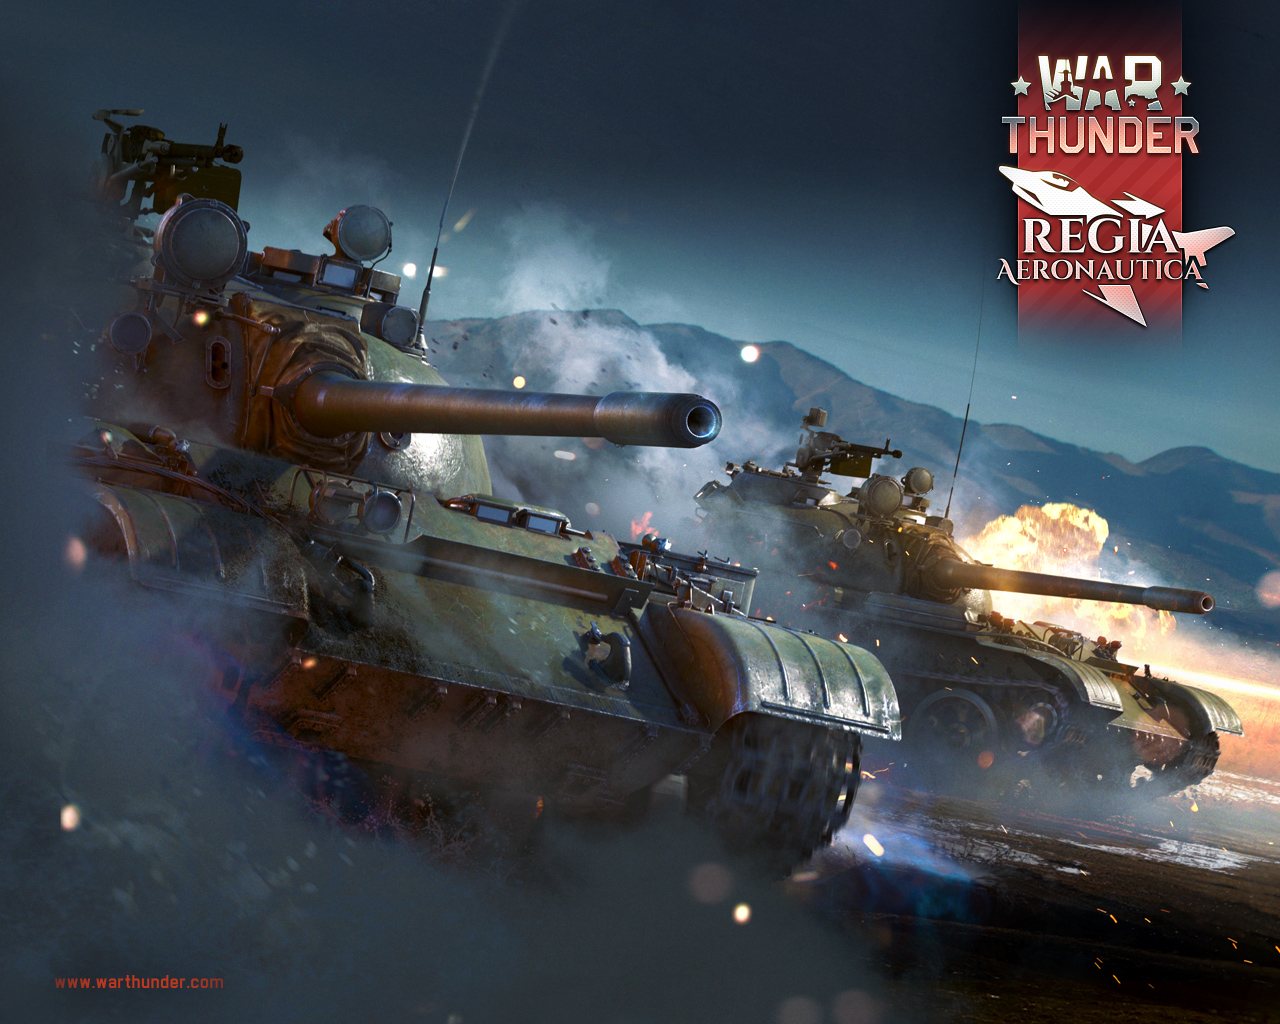 war thunder next gen mmo combat game for pc  mac  linux ussr logo meaning uss logo